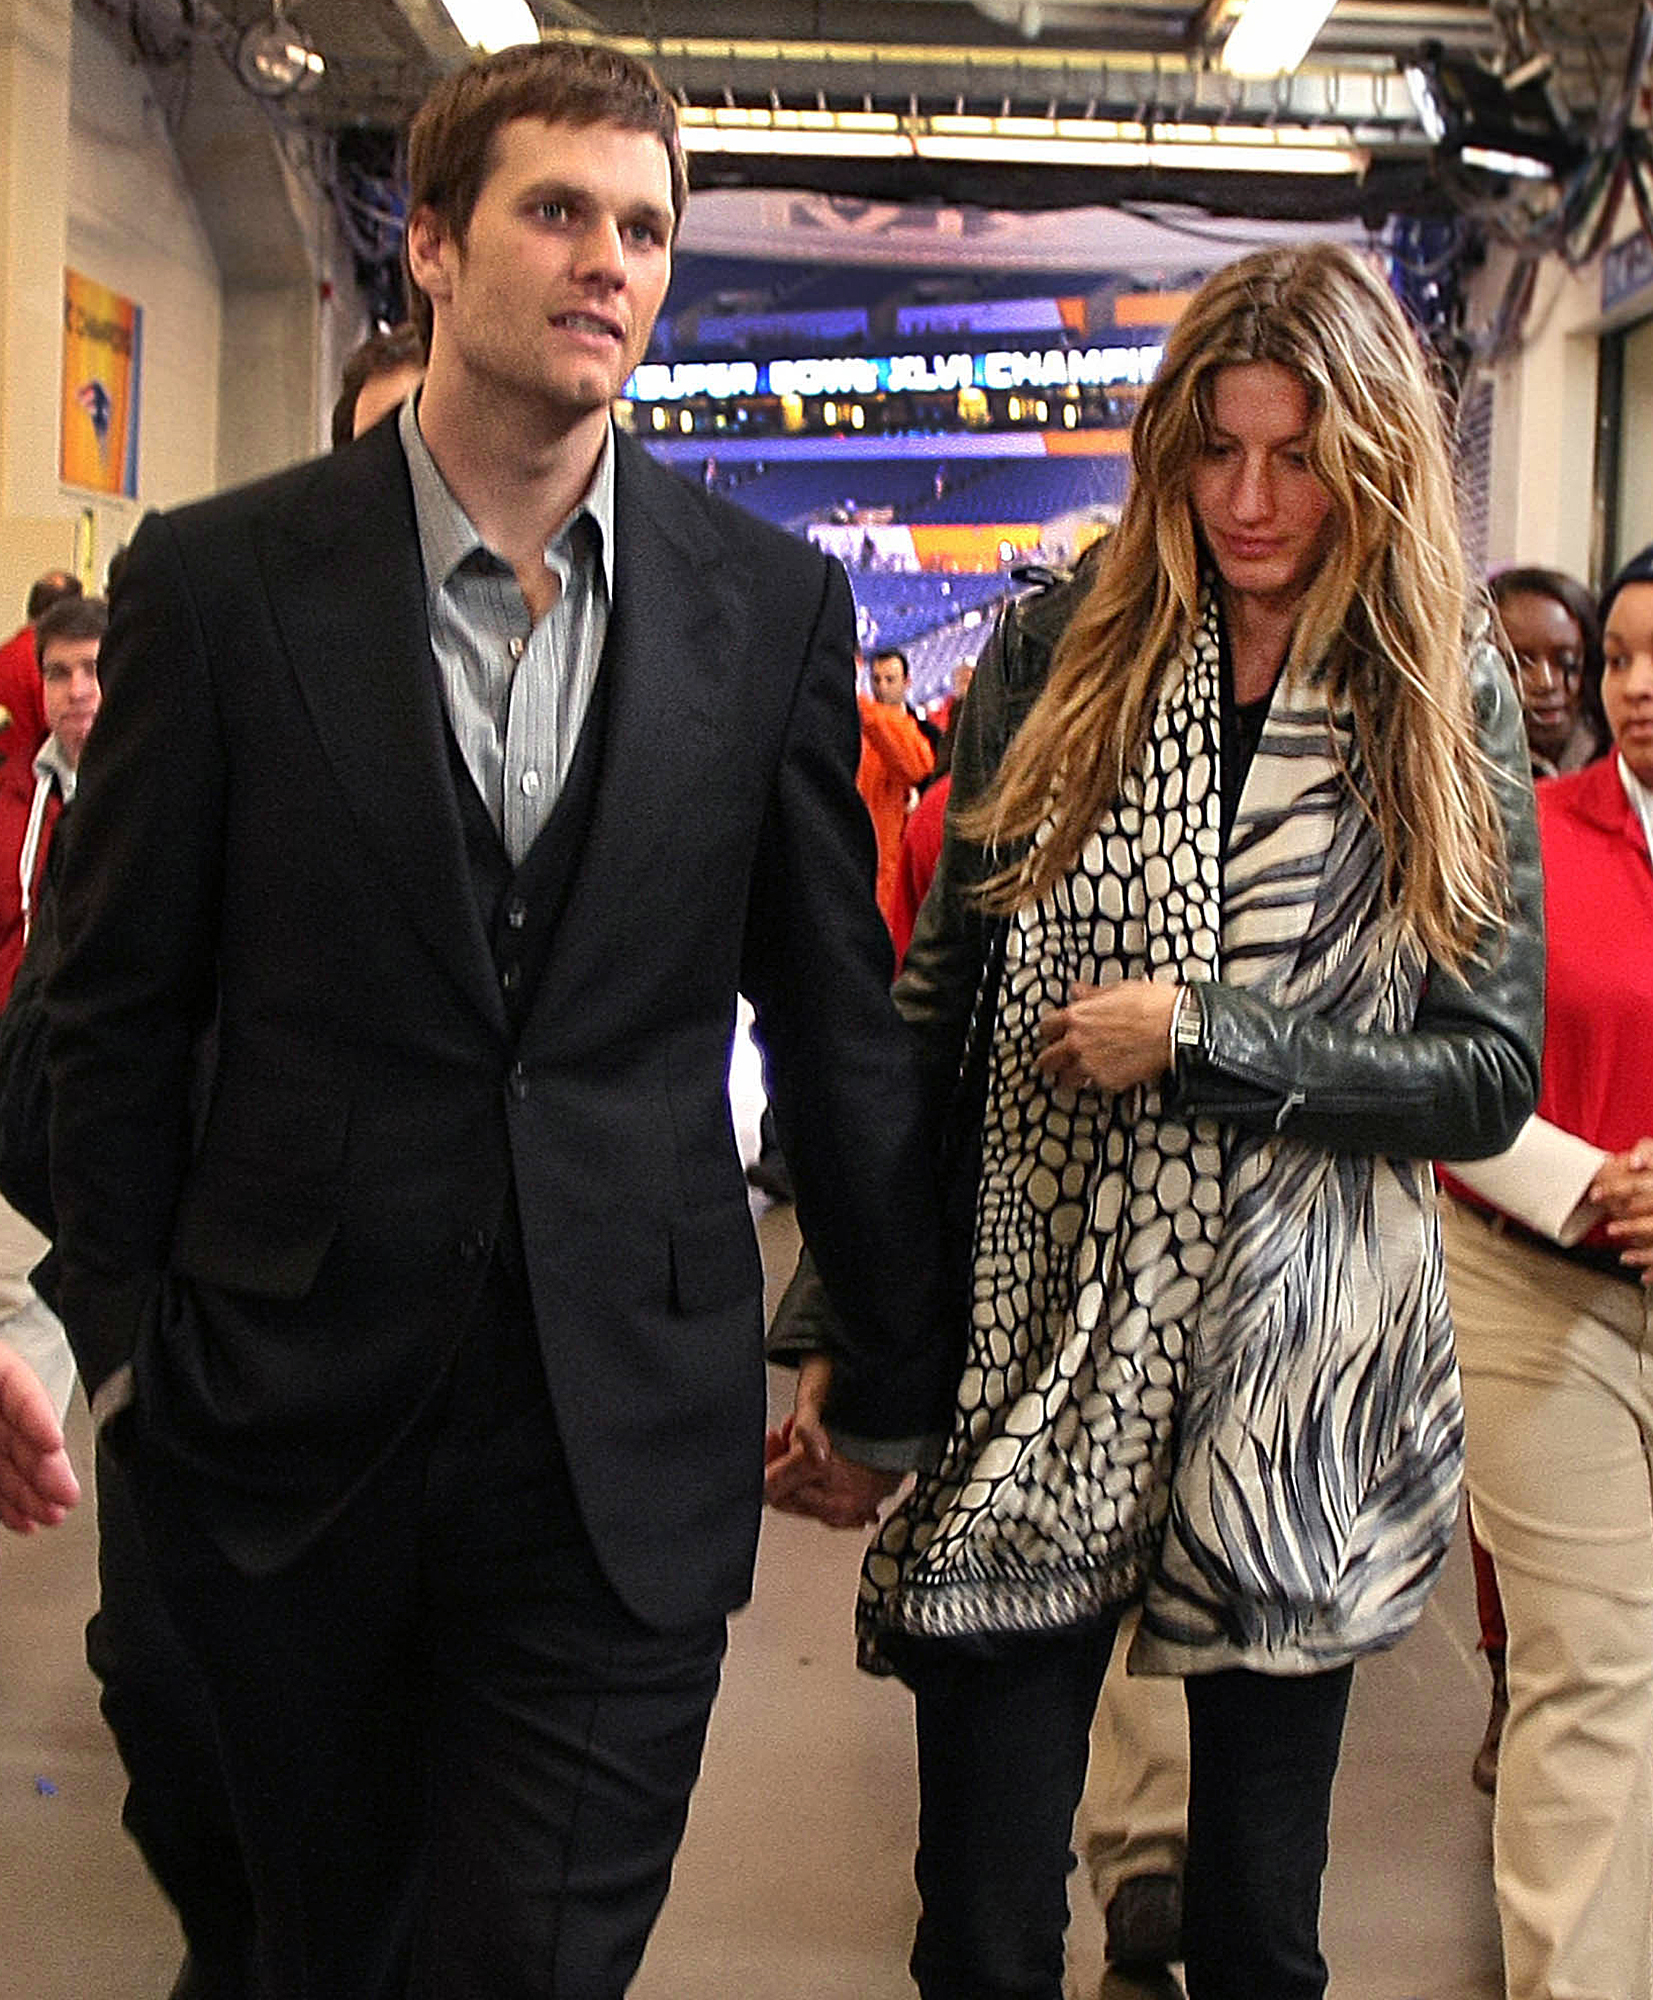 """Tom Brady and Gisele Bundchen: A Timeline of Their Relationship - Bündchen made headlines in February 2012 after she defended Brady following the Patriots loss to the New York Giants during Super Bowl XLVI. """"My husband cannot f—king throw the ball and catch the ball at the same time. I can't believe they dropped the ball so many times,"""" she yelled at the time."""